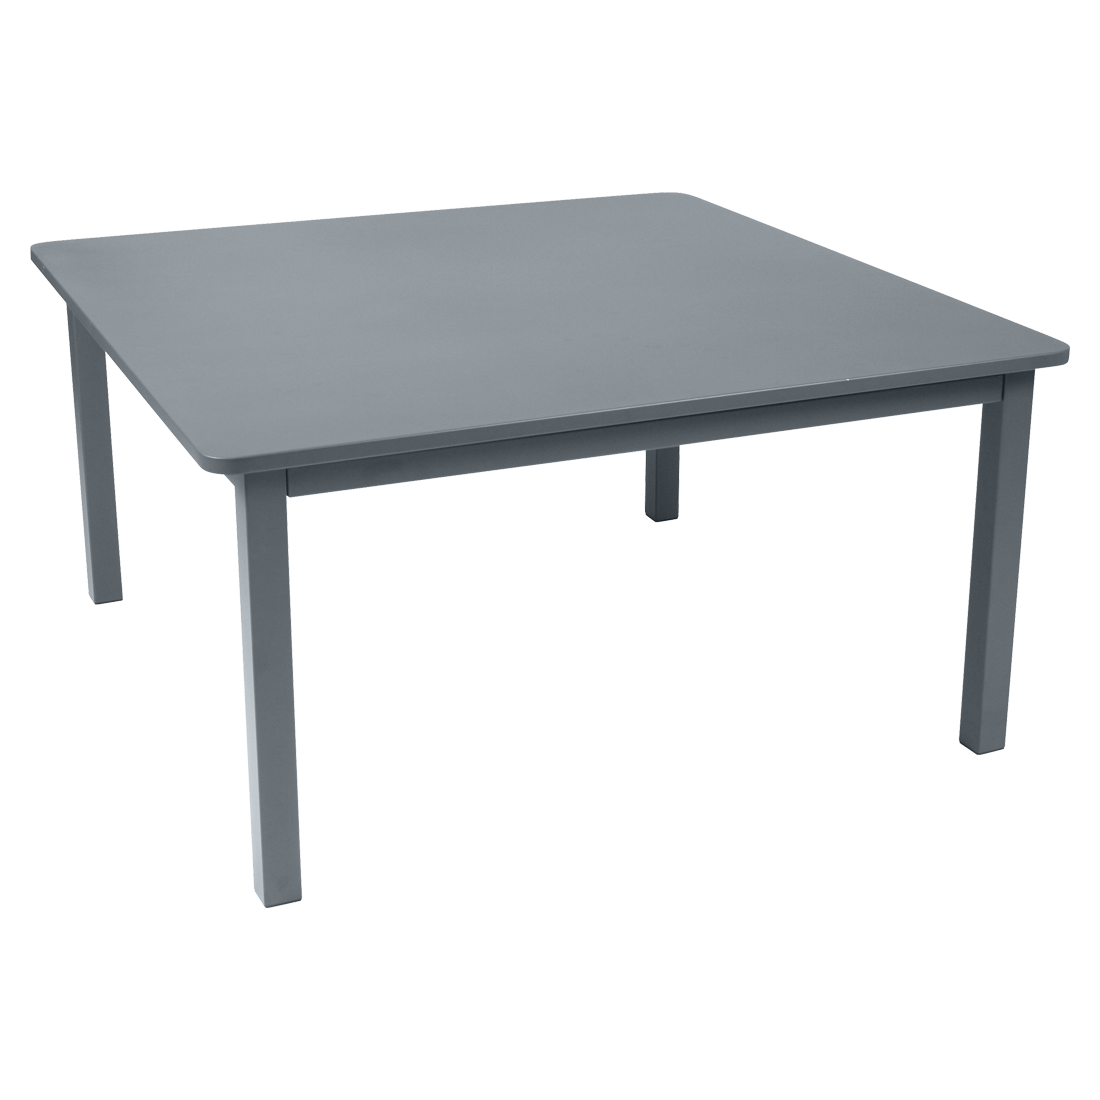 Table 8 Personnes Carrée Table Craft Table De Jardin Table Jardin 8 Places